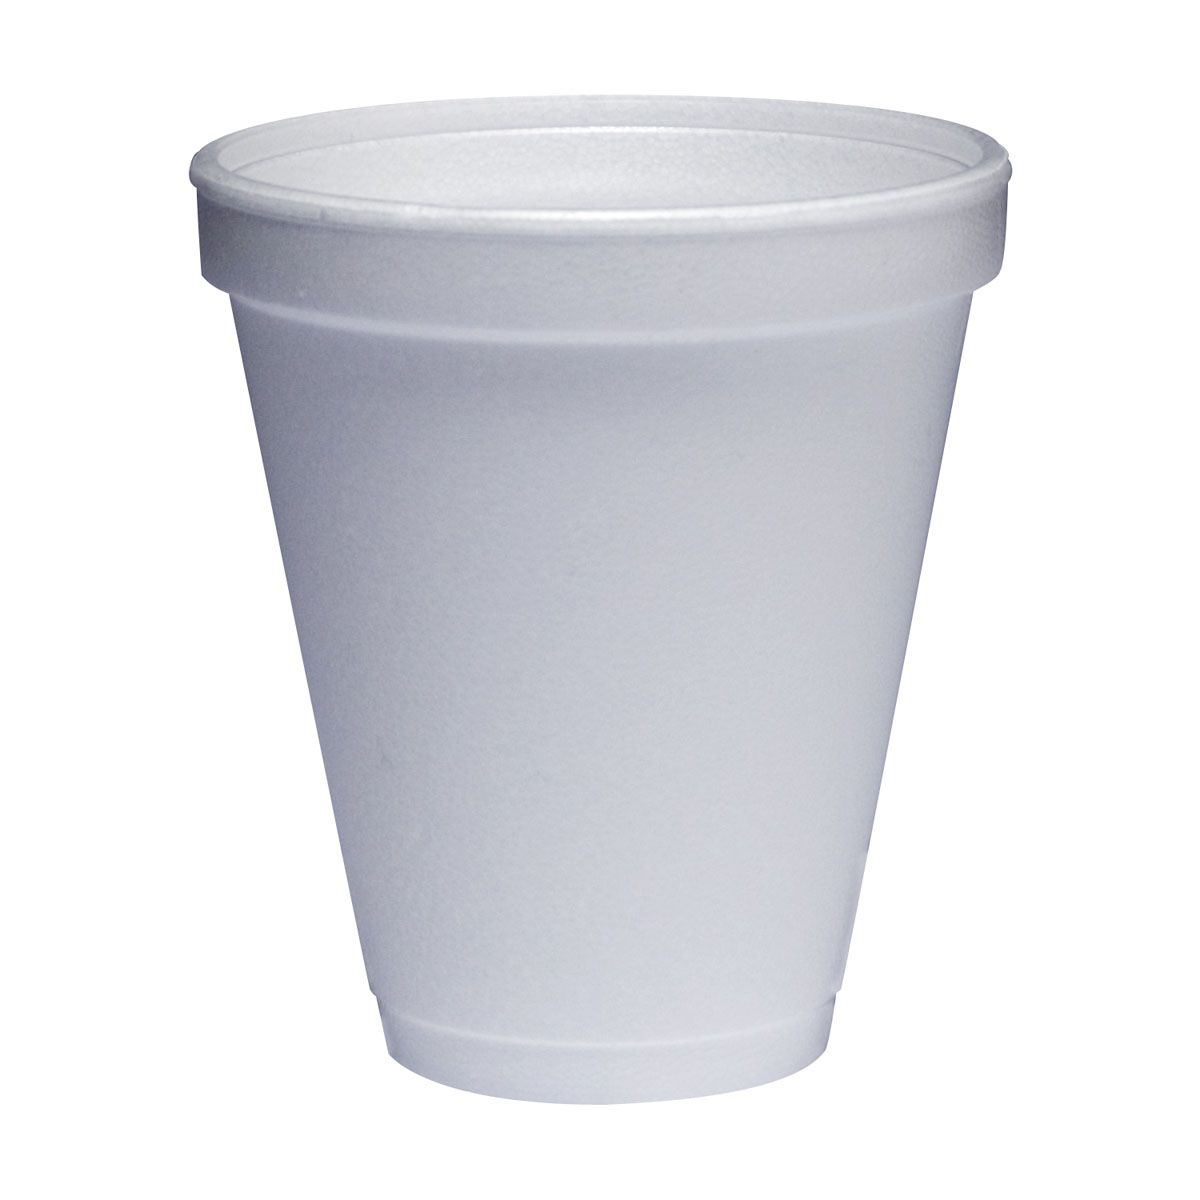 Dart Disposable Styrofoam Drinking Cup - 12 Oz, Box of 1000 - Model 12J12